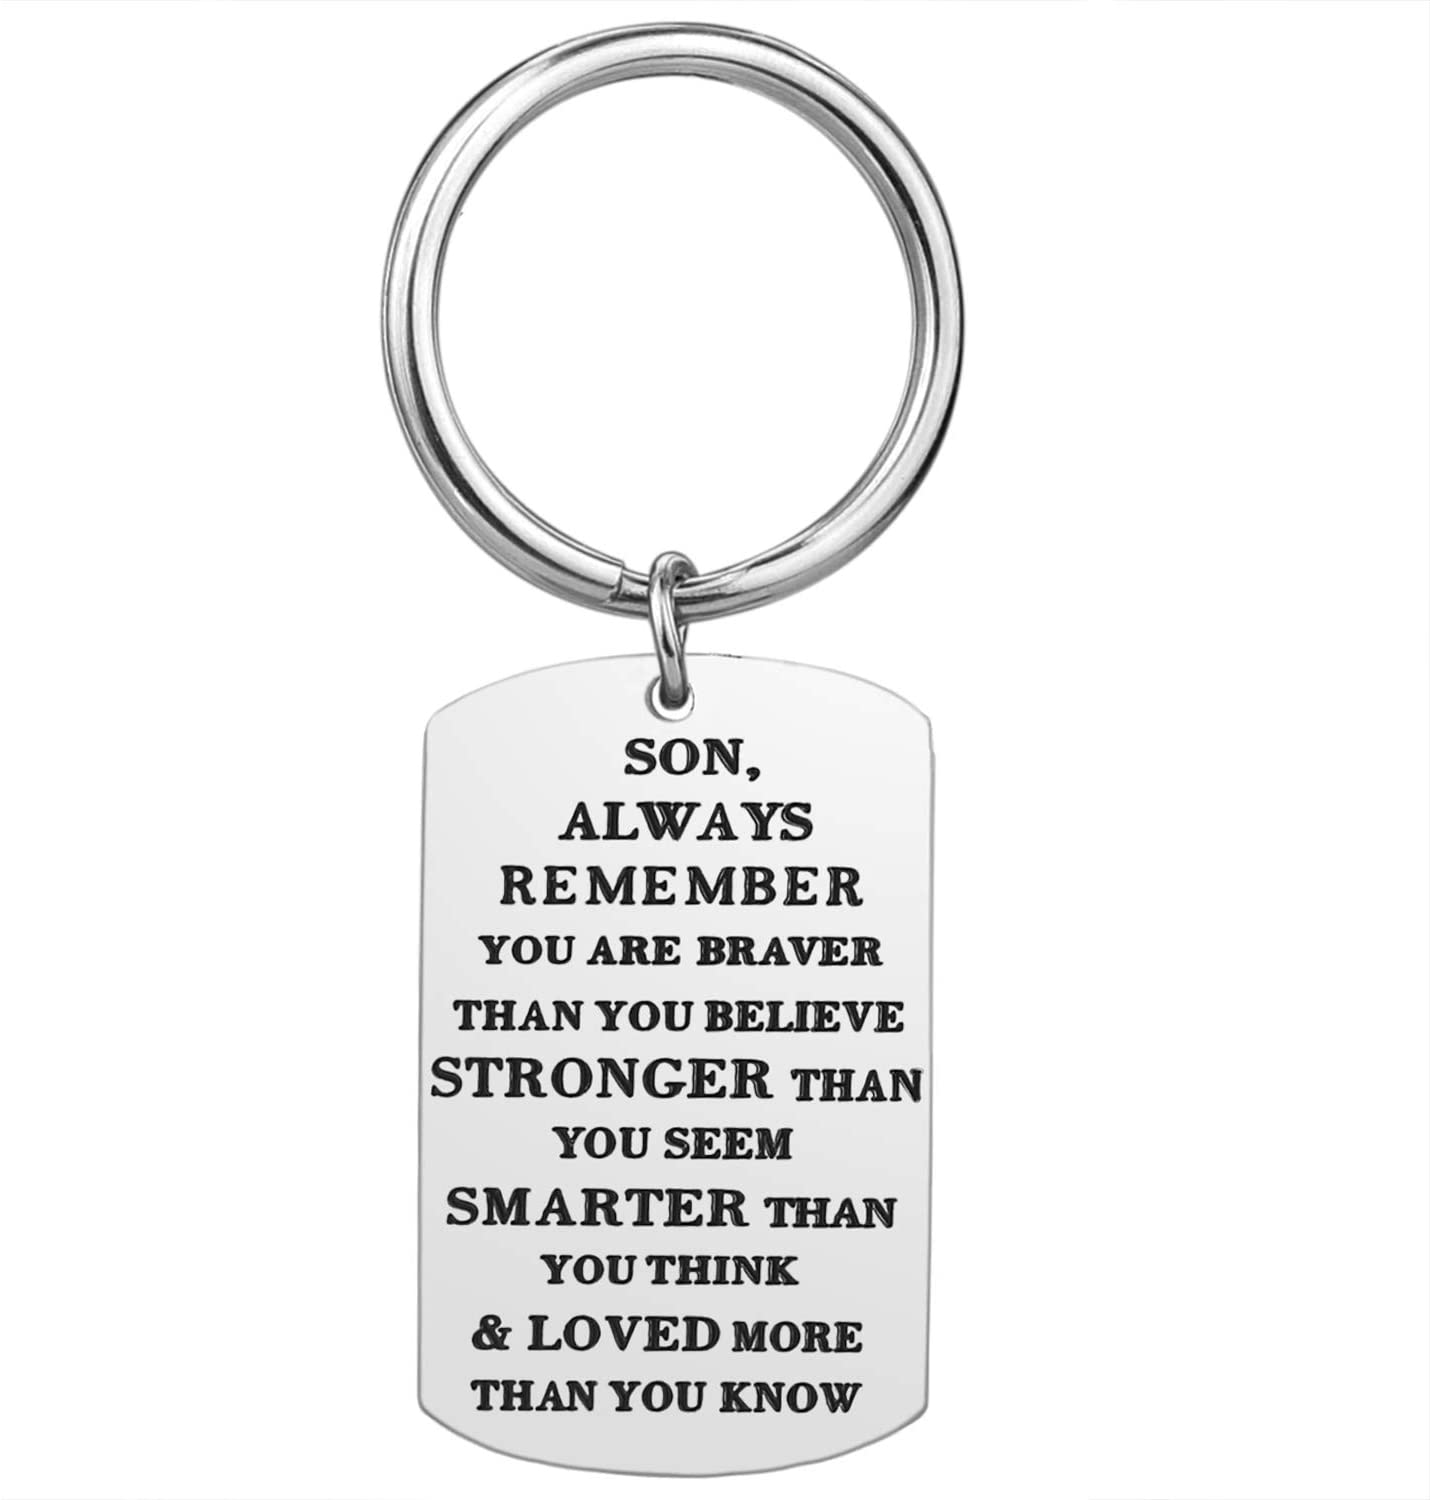 Son Gifts from Mom Dad - Son Always Remember You are Braver Stronger Smarter Inspirational Keychain Christmas Birthday Valentine's Day Gifts for Son from Mother Father